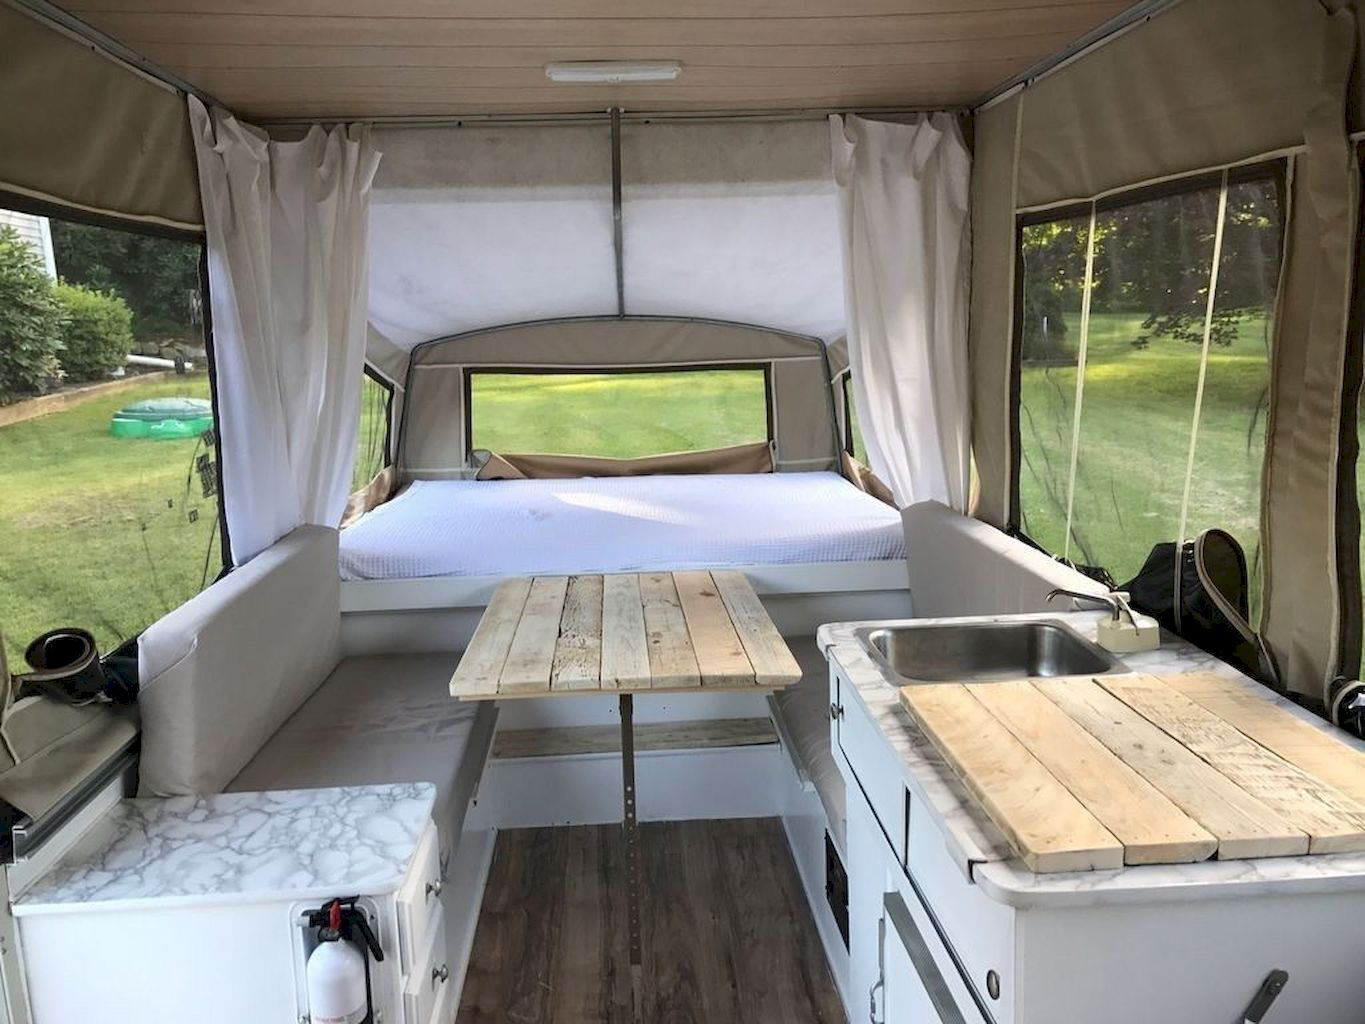 What You Must Consider When Purchasing Camper Trailers